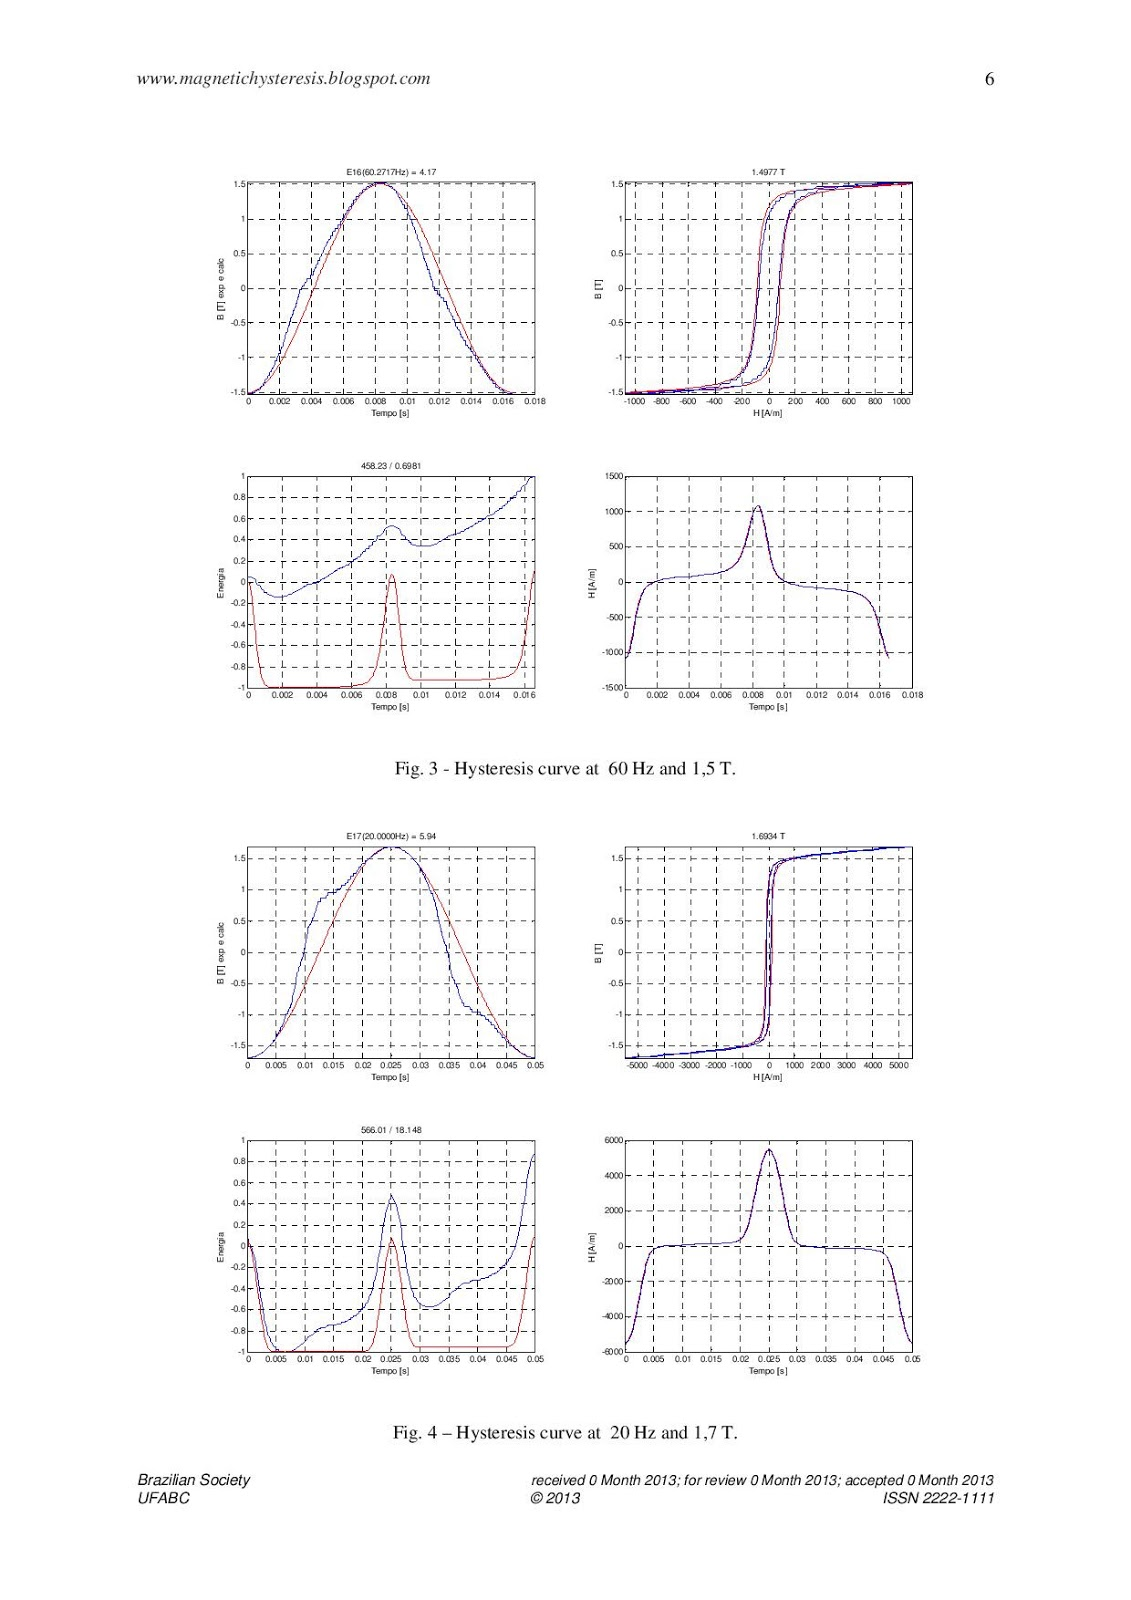 Magnetic Hysteresis Dynamic Model: Variable frequency